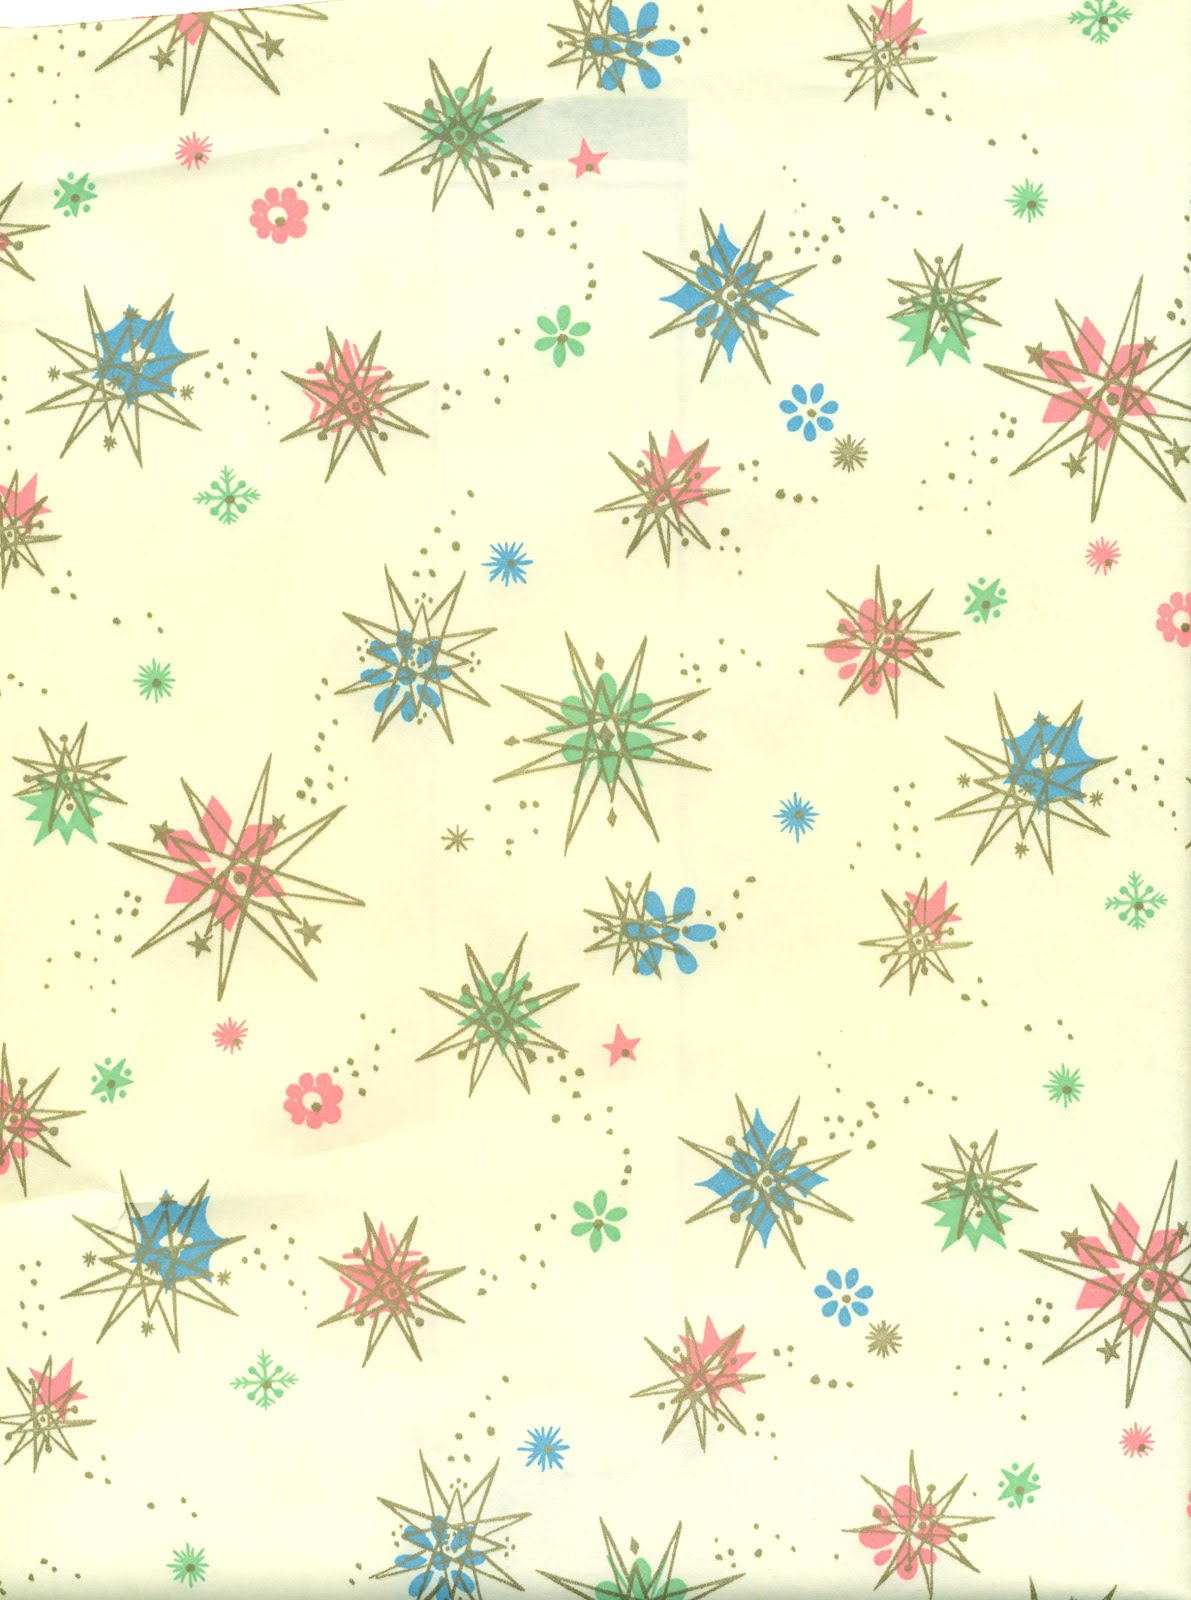 1950s wallpaper designs starburst - photo #22